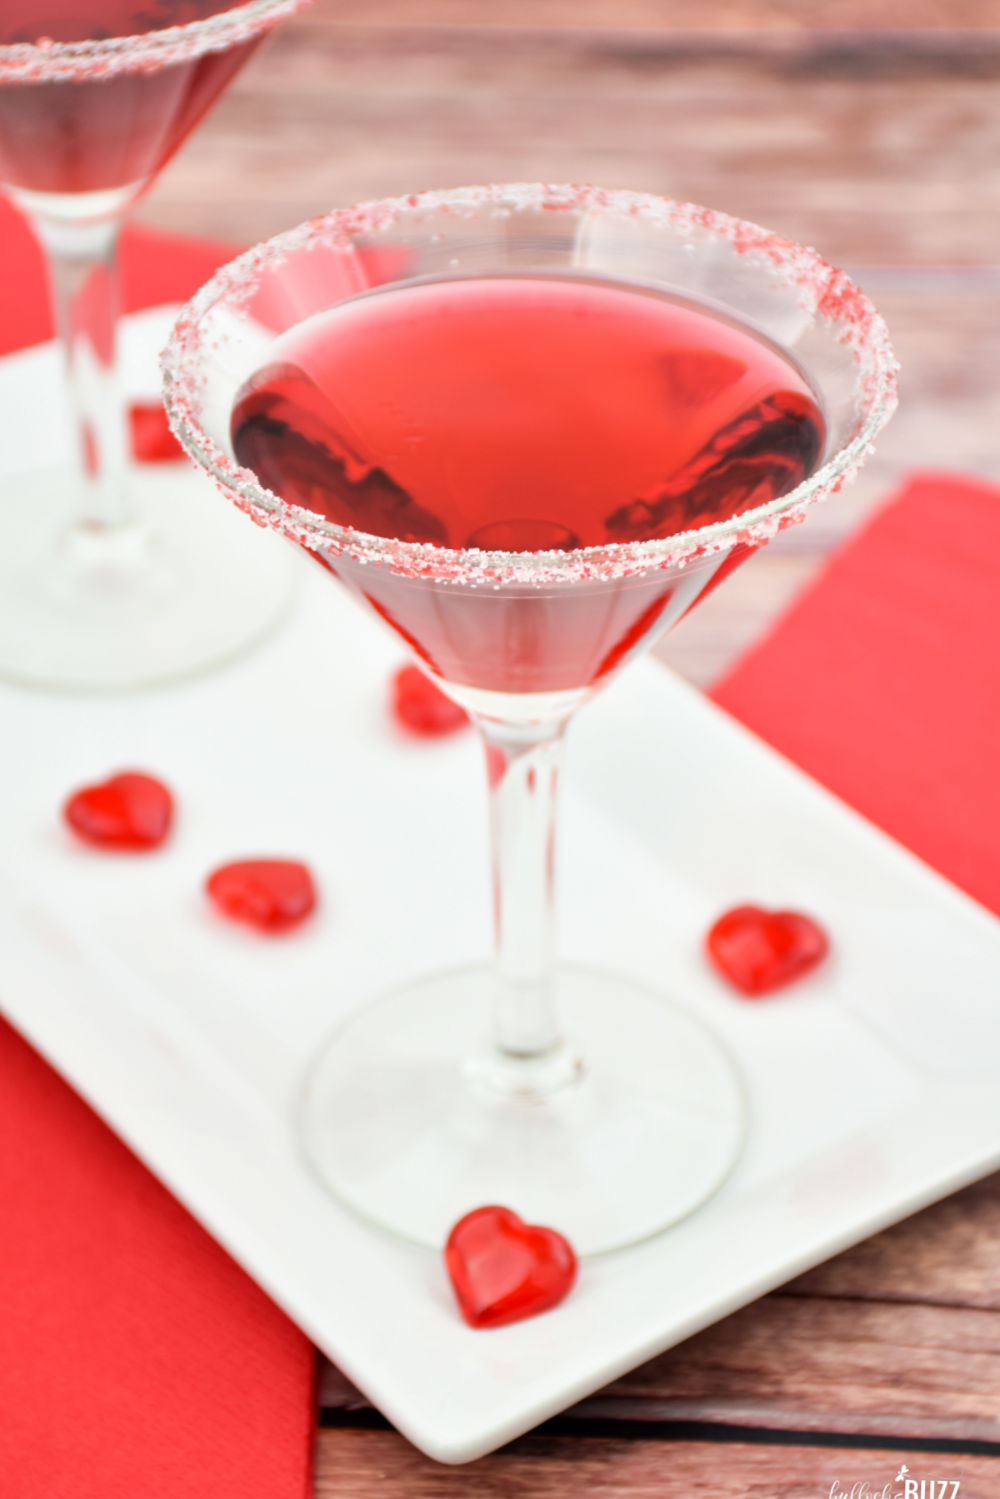 This fruity Cupid's Heart Valentine's Day Cocktail recipe is a perfectly sweet way to add a splash of romance or fun to your celebration.